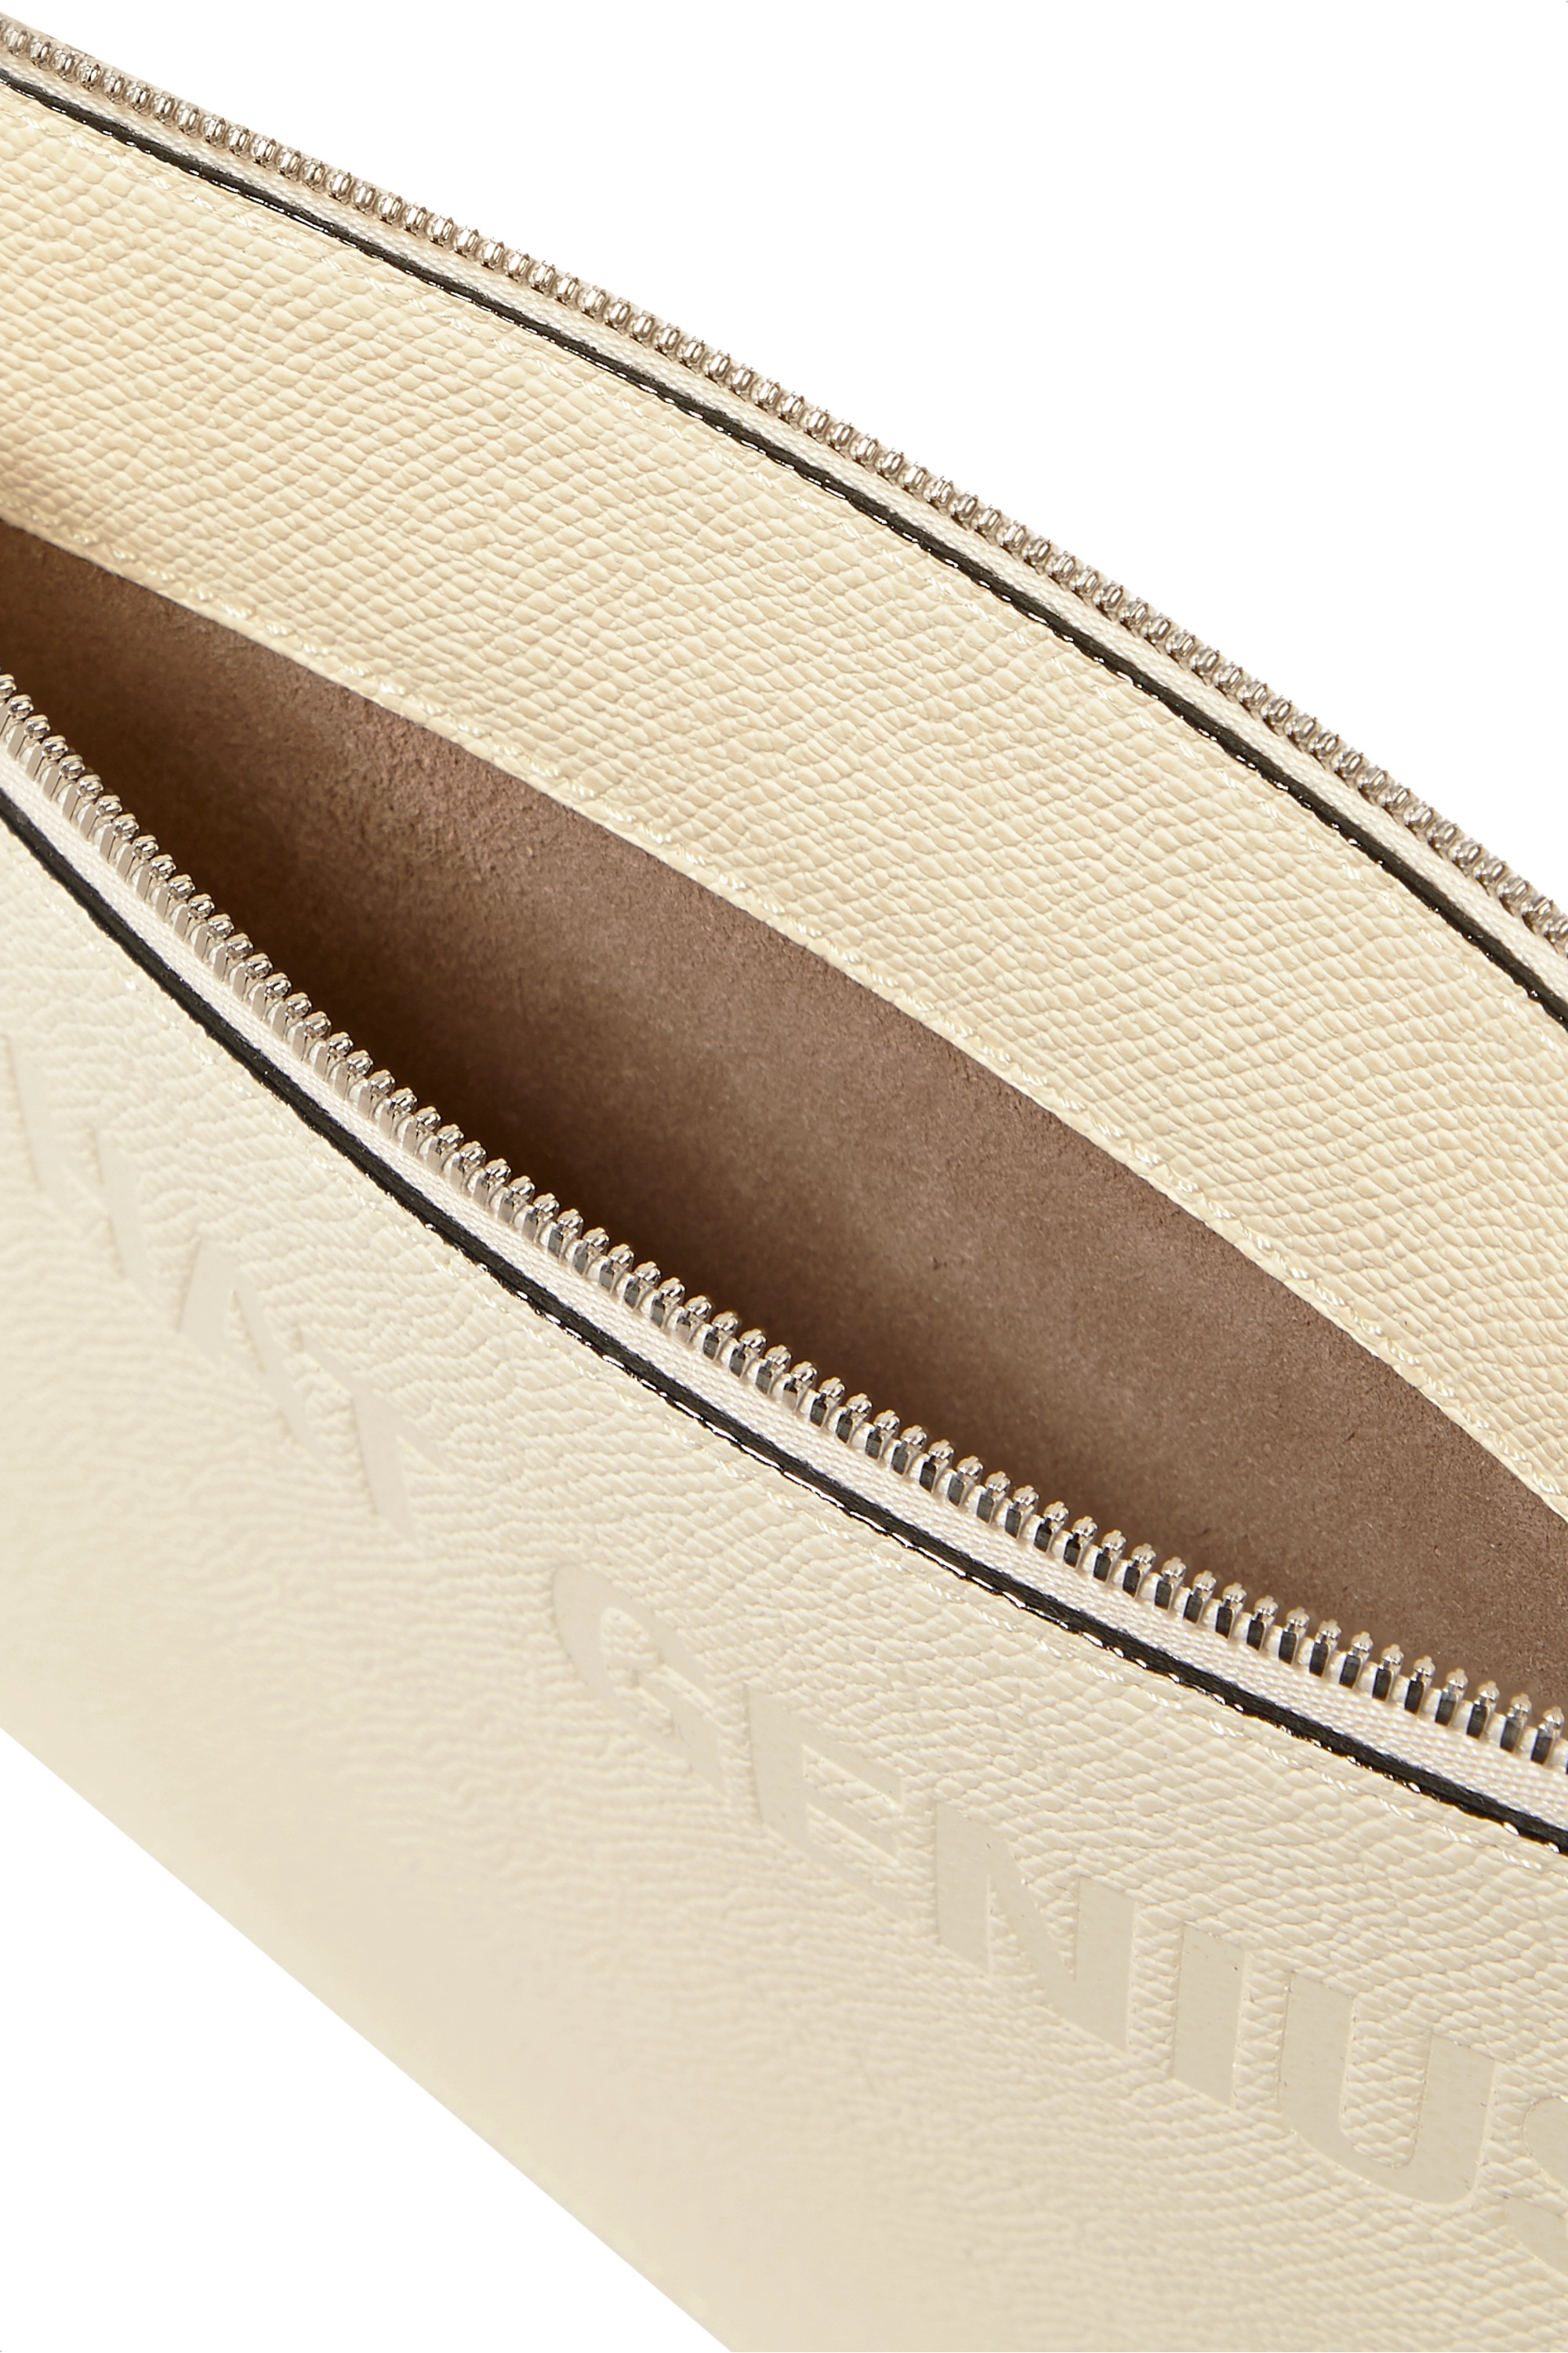 Moncler Genius + 2 Moncler 1952 Valextra debossed two-tone textured-leather clutch